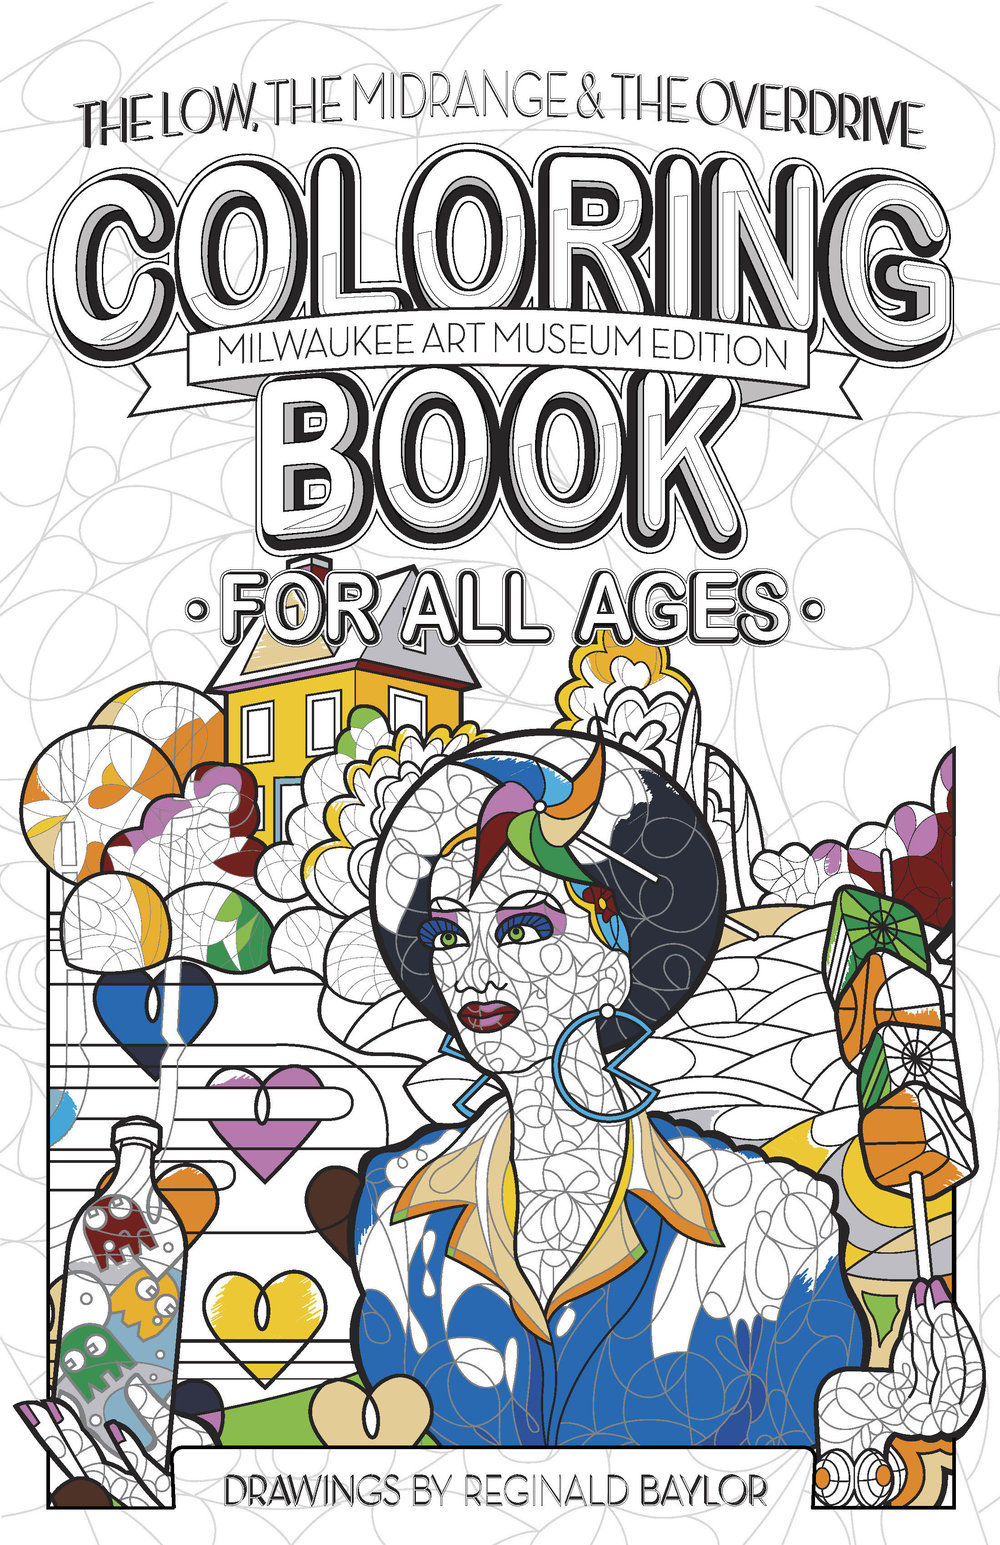 Coloring Book Store — Reginald Baylor Studio